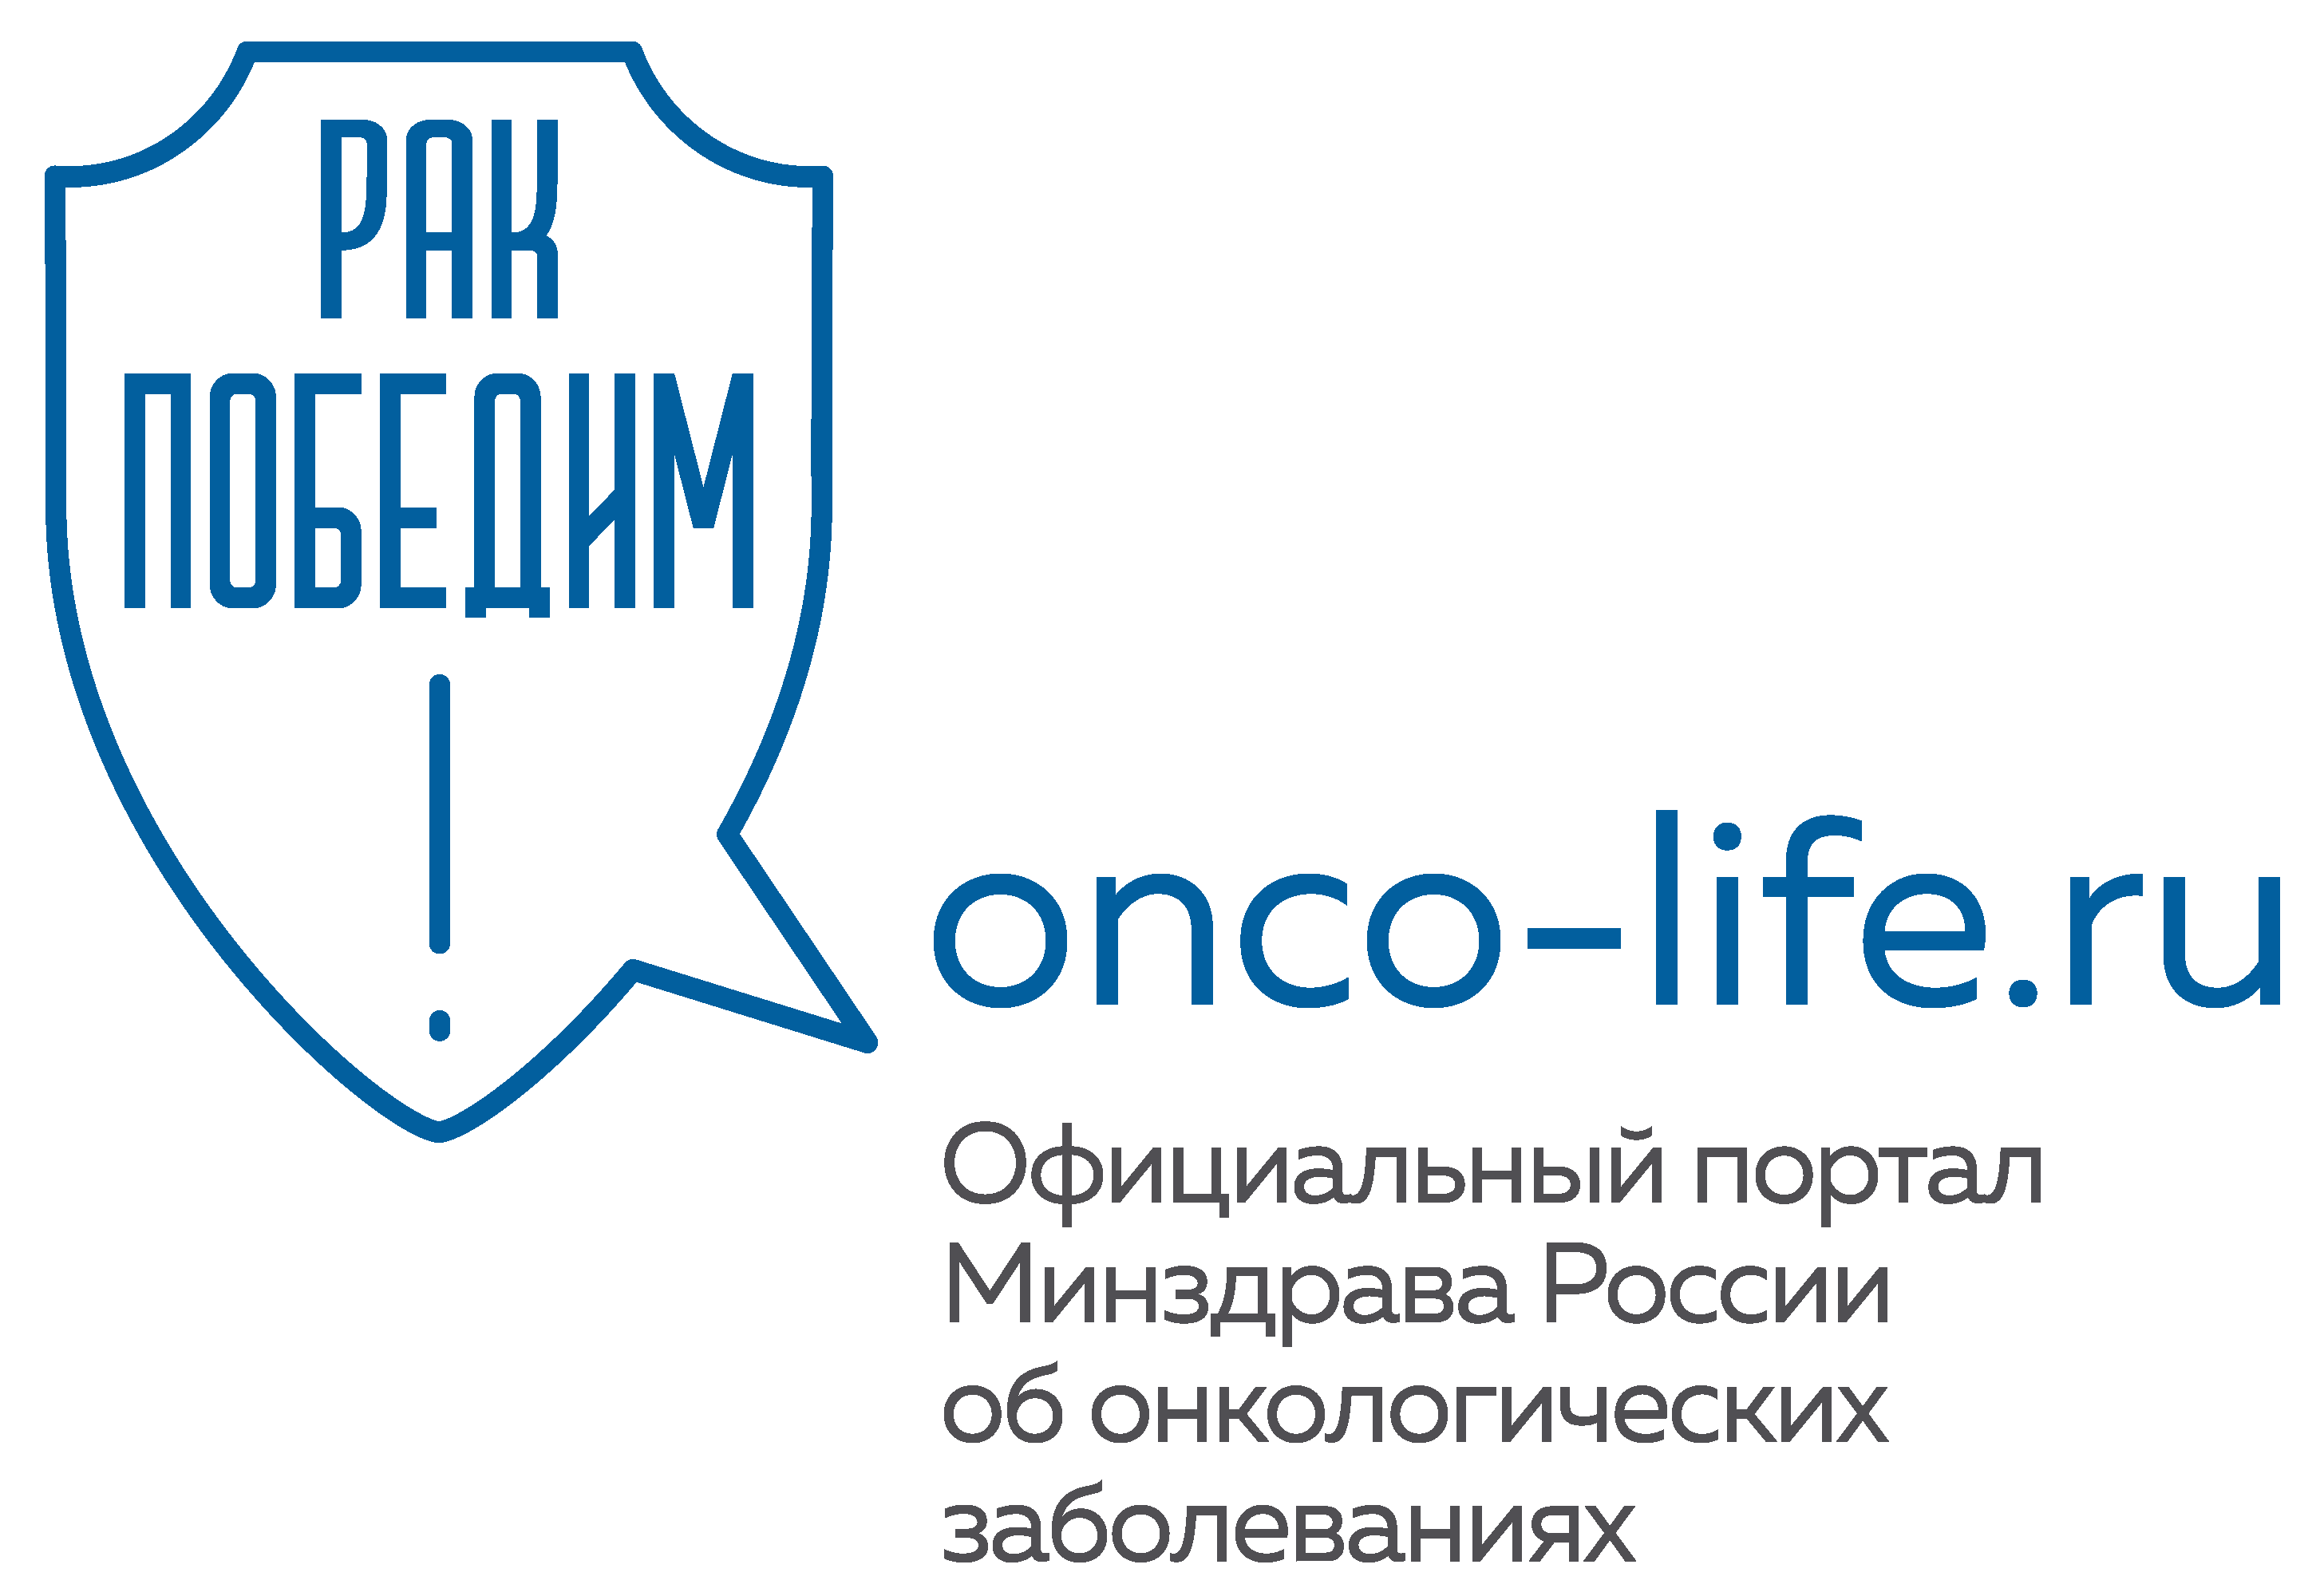 oncolife